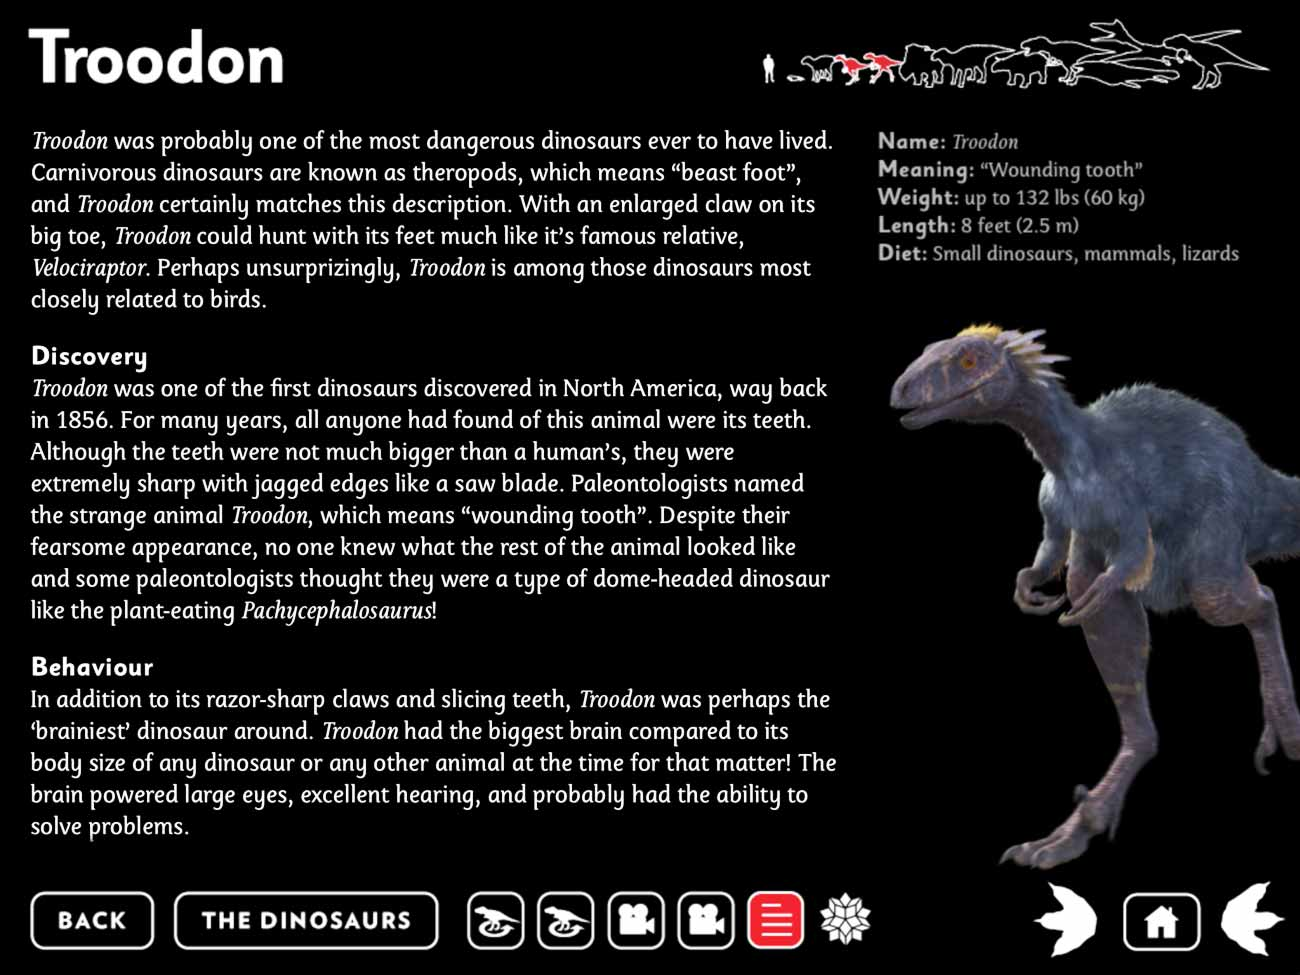 The app includes tons of excellent information and imagery covering each dinosaur in the story.